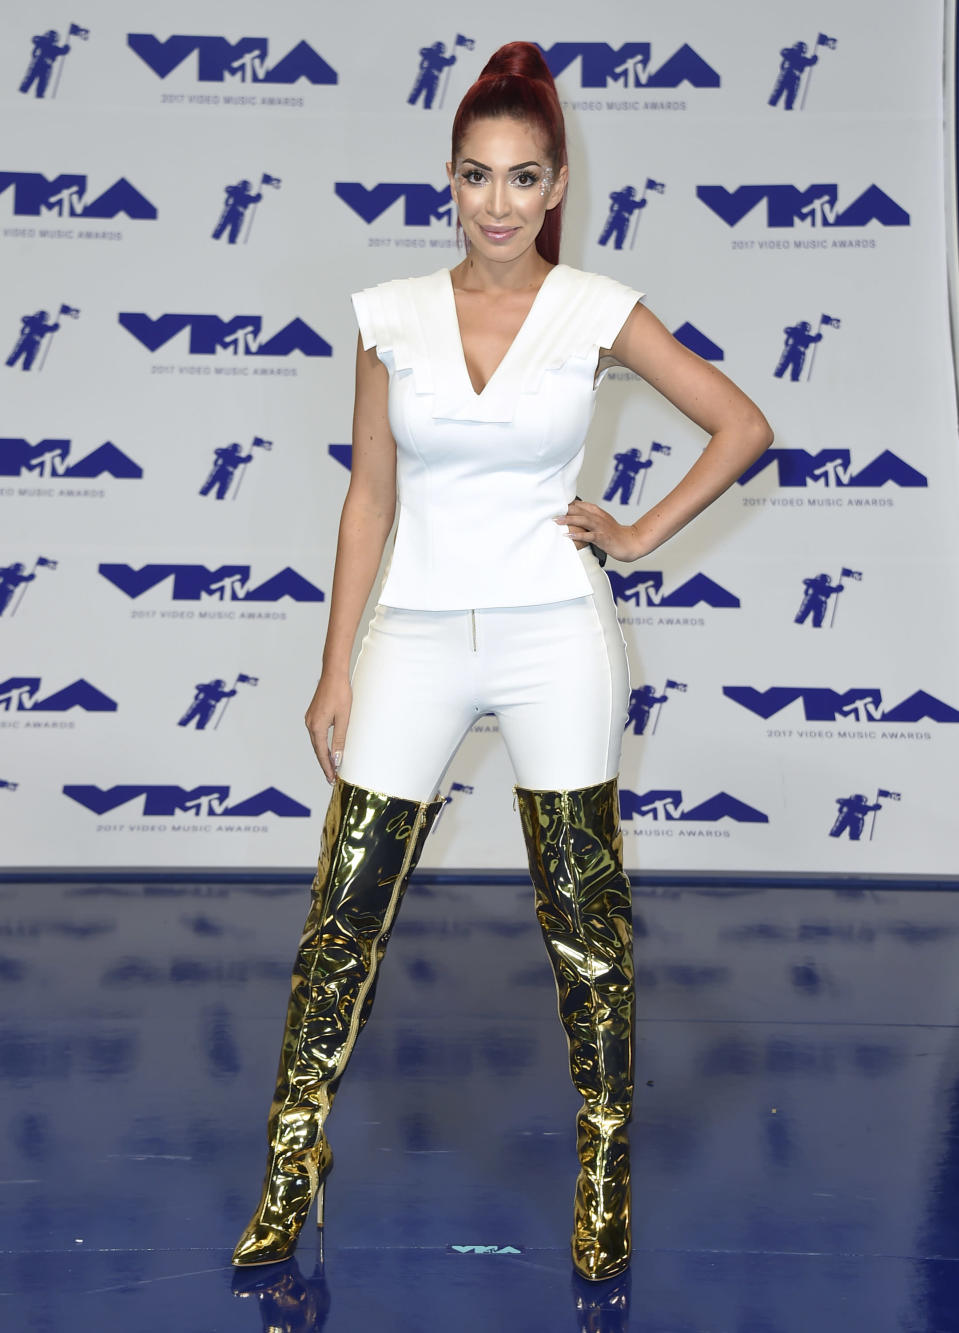 Farrah Abraham at the MTV Video Music Awards on Sunday, Aug. 27, 2017, in Inglewood, Calif. (Photo by Jordan Strauss/Invision/AP)